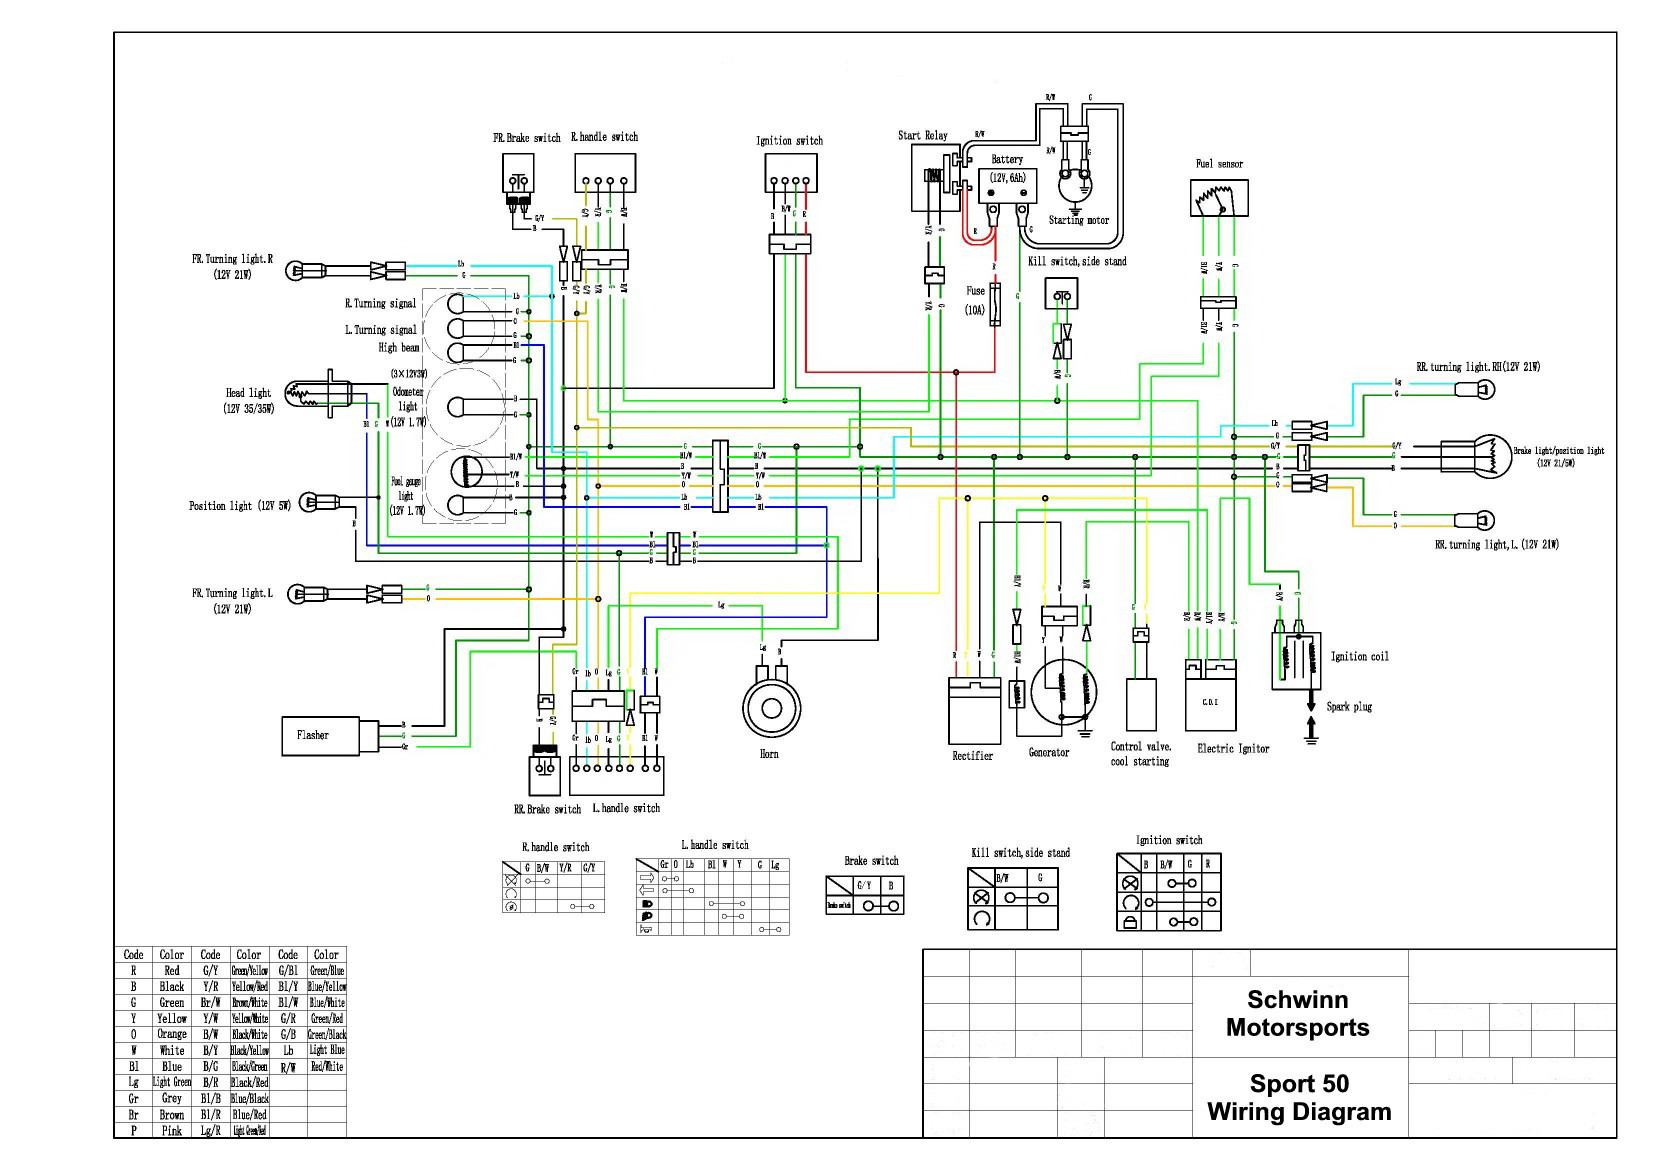 pride victory scooter wiring diagram Download-Victory Trailer Wiring Diagram Best Pride Mobility Victory Scooter Wiring Diagram Wiring solutions 16-a